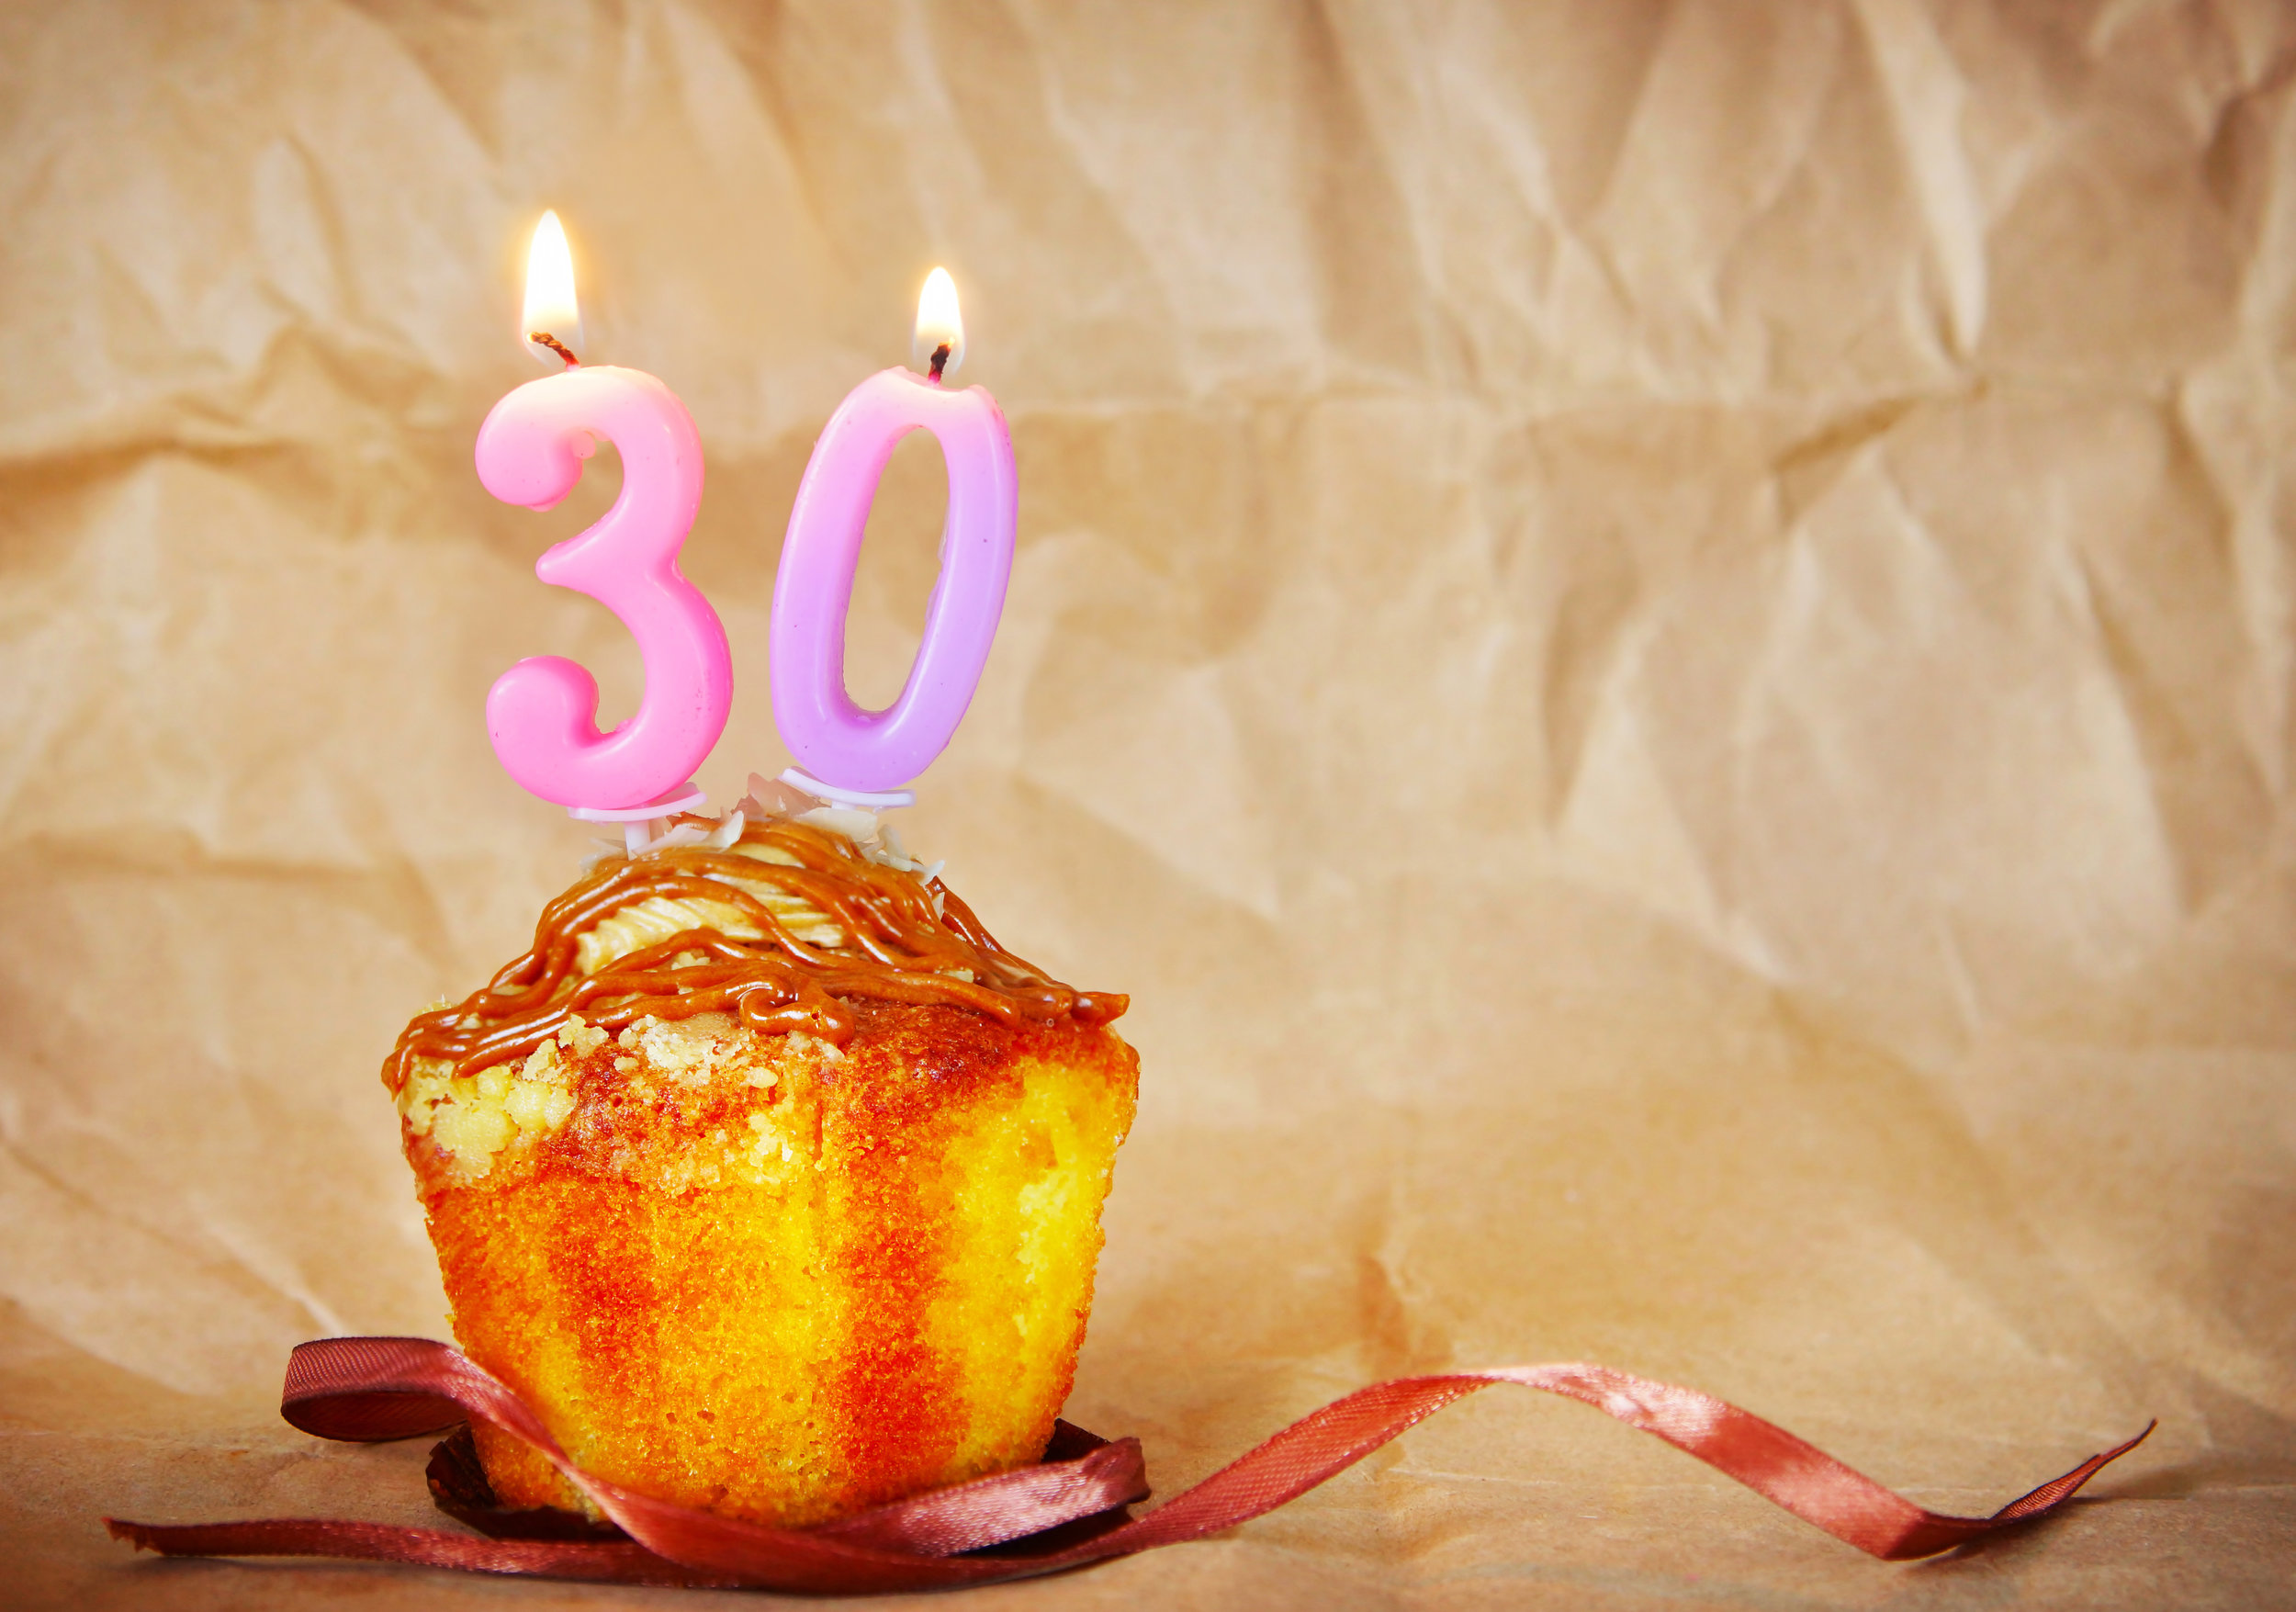 10 Things To Do Before The Big 30